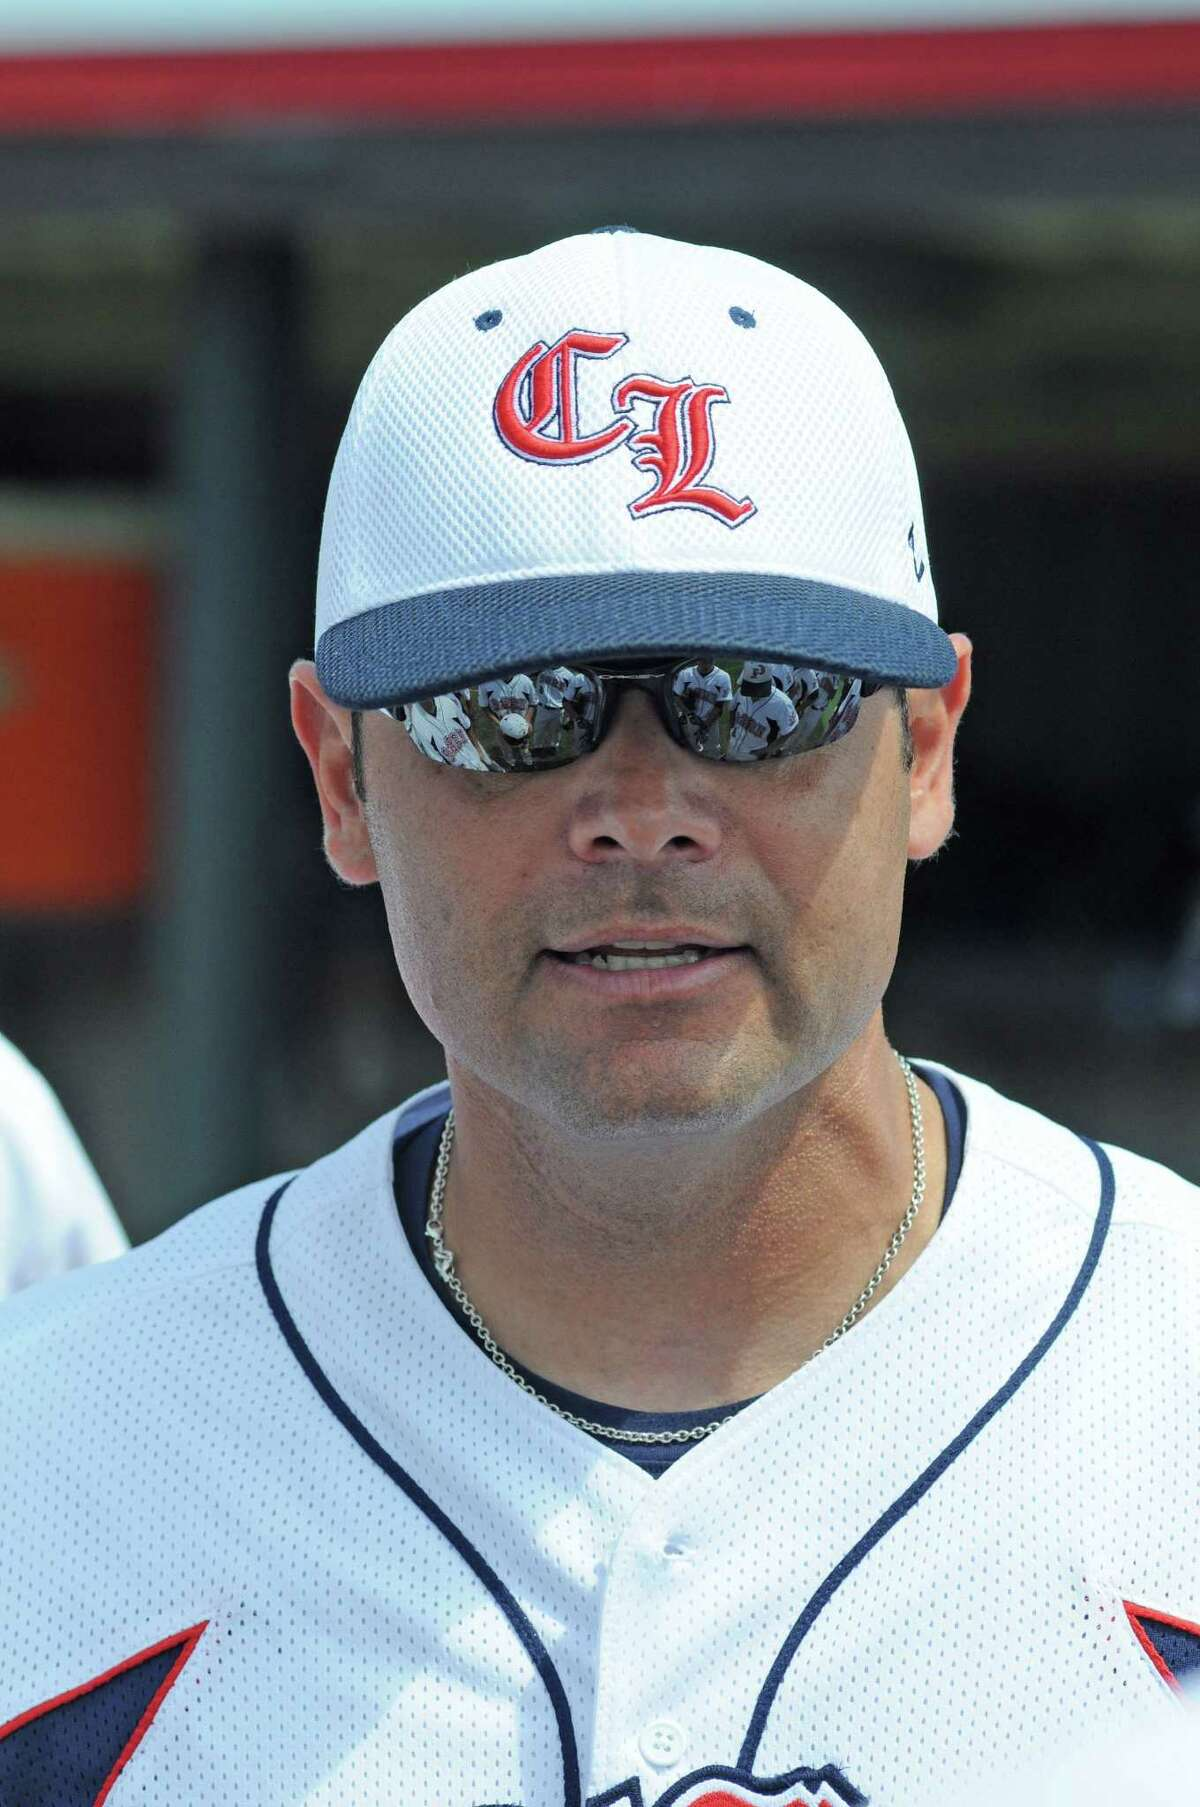 Clear Lake baseball coach Rupert Jaso. Clear Lake recorded a 3-1 District 24-5A home win against Alvin on 3-19-11.